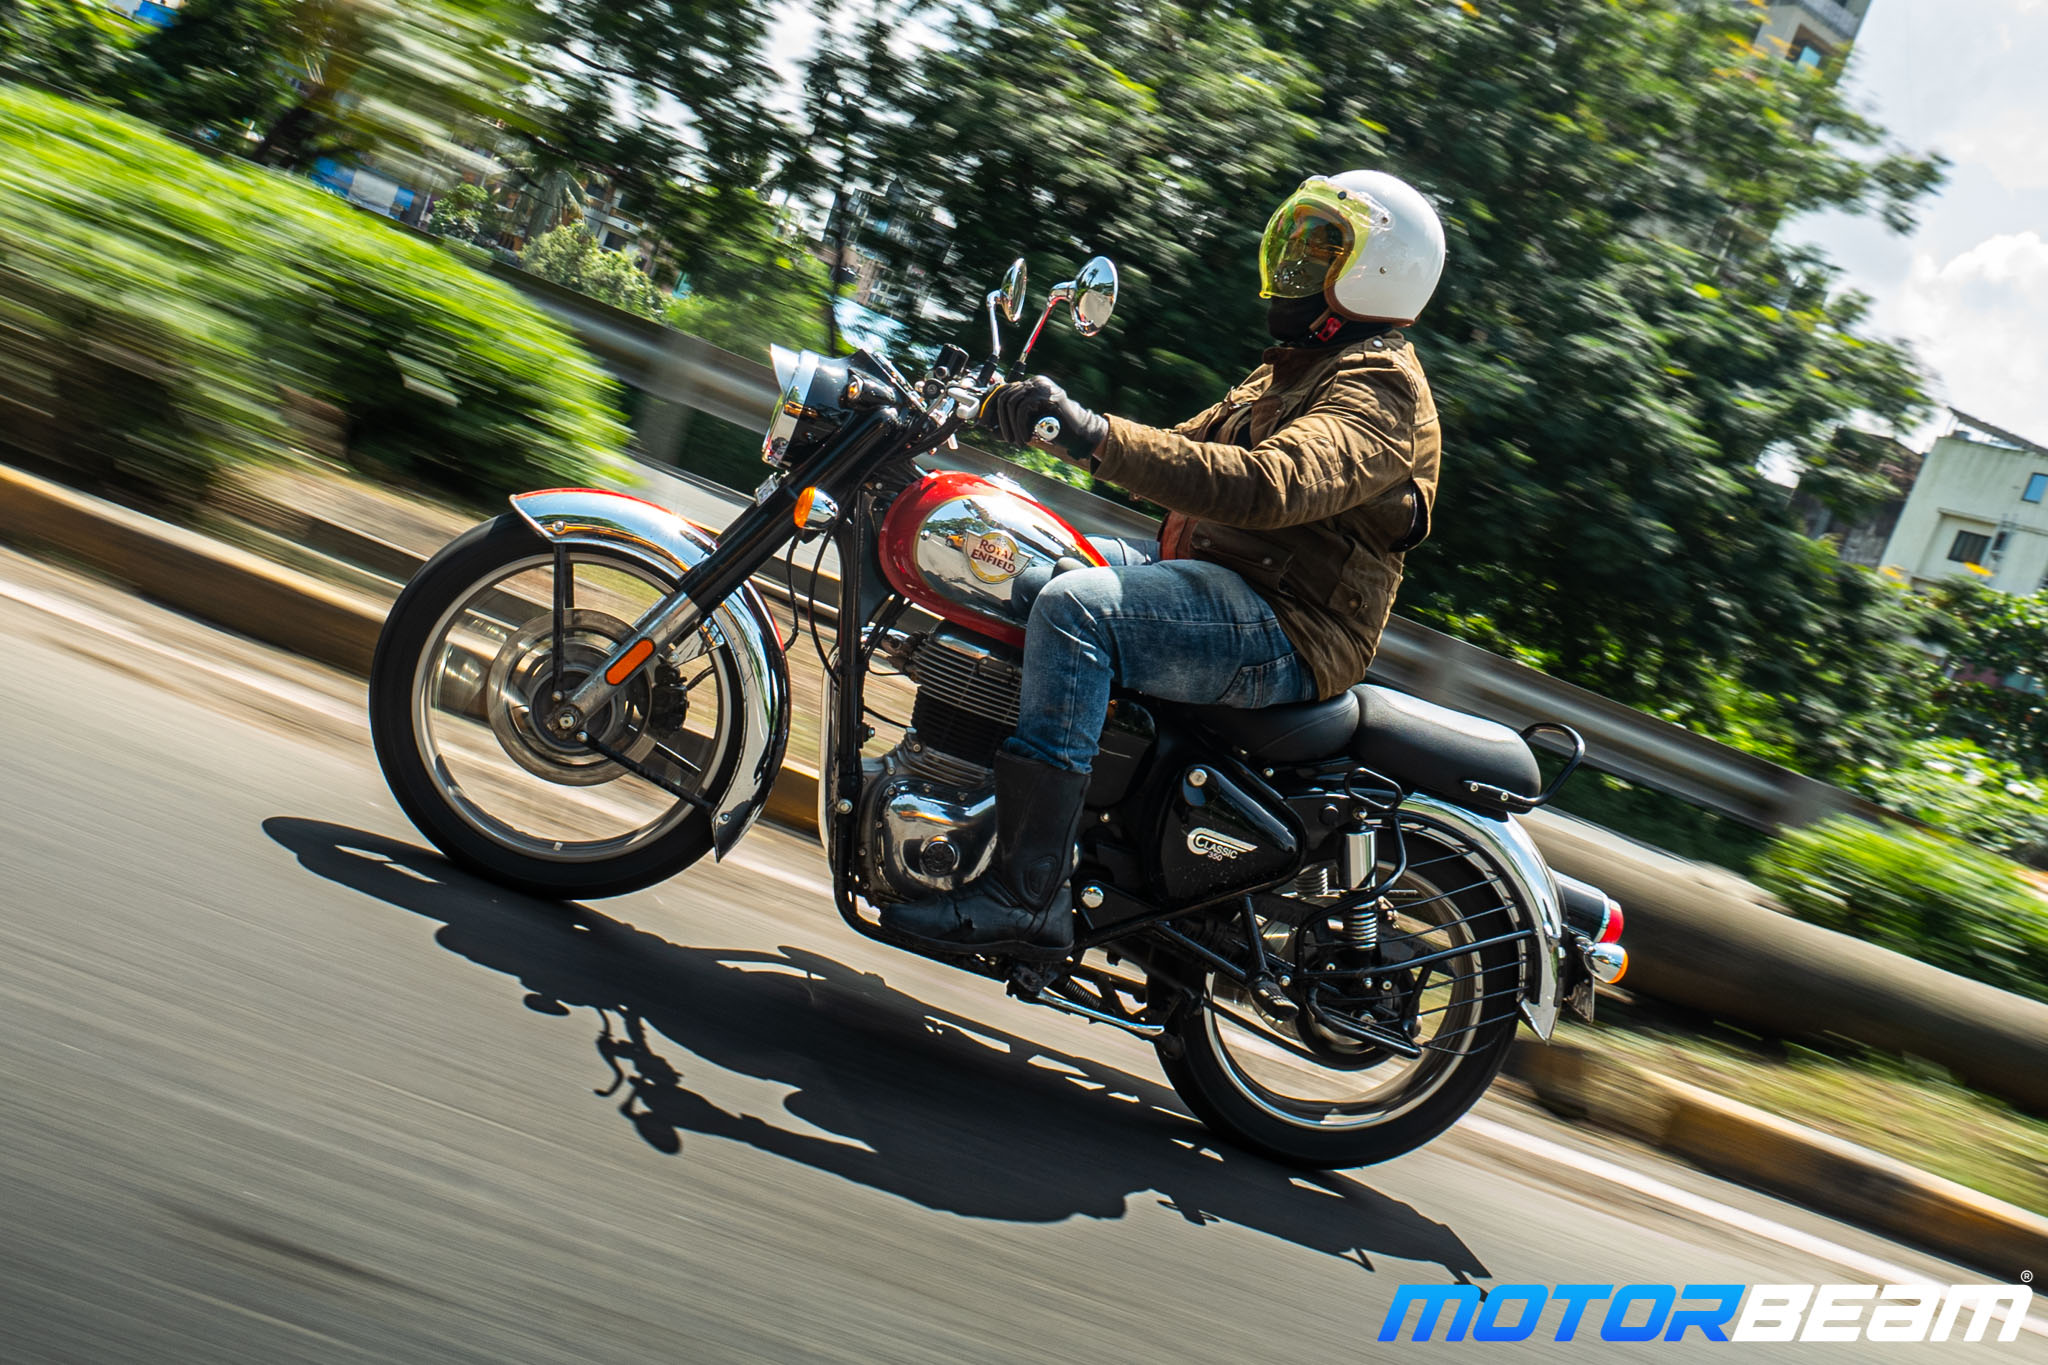 2022 Royal Enfield Classic 350 Review 38